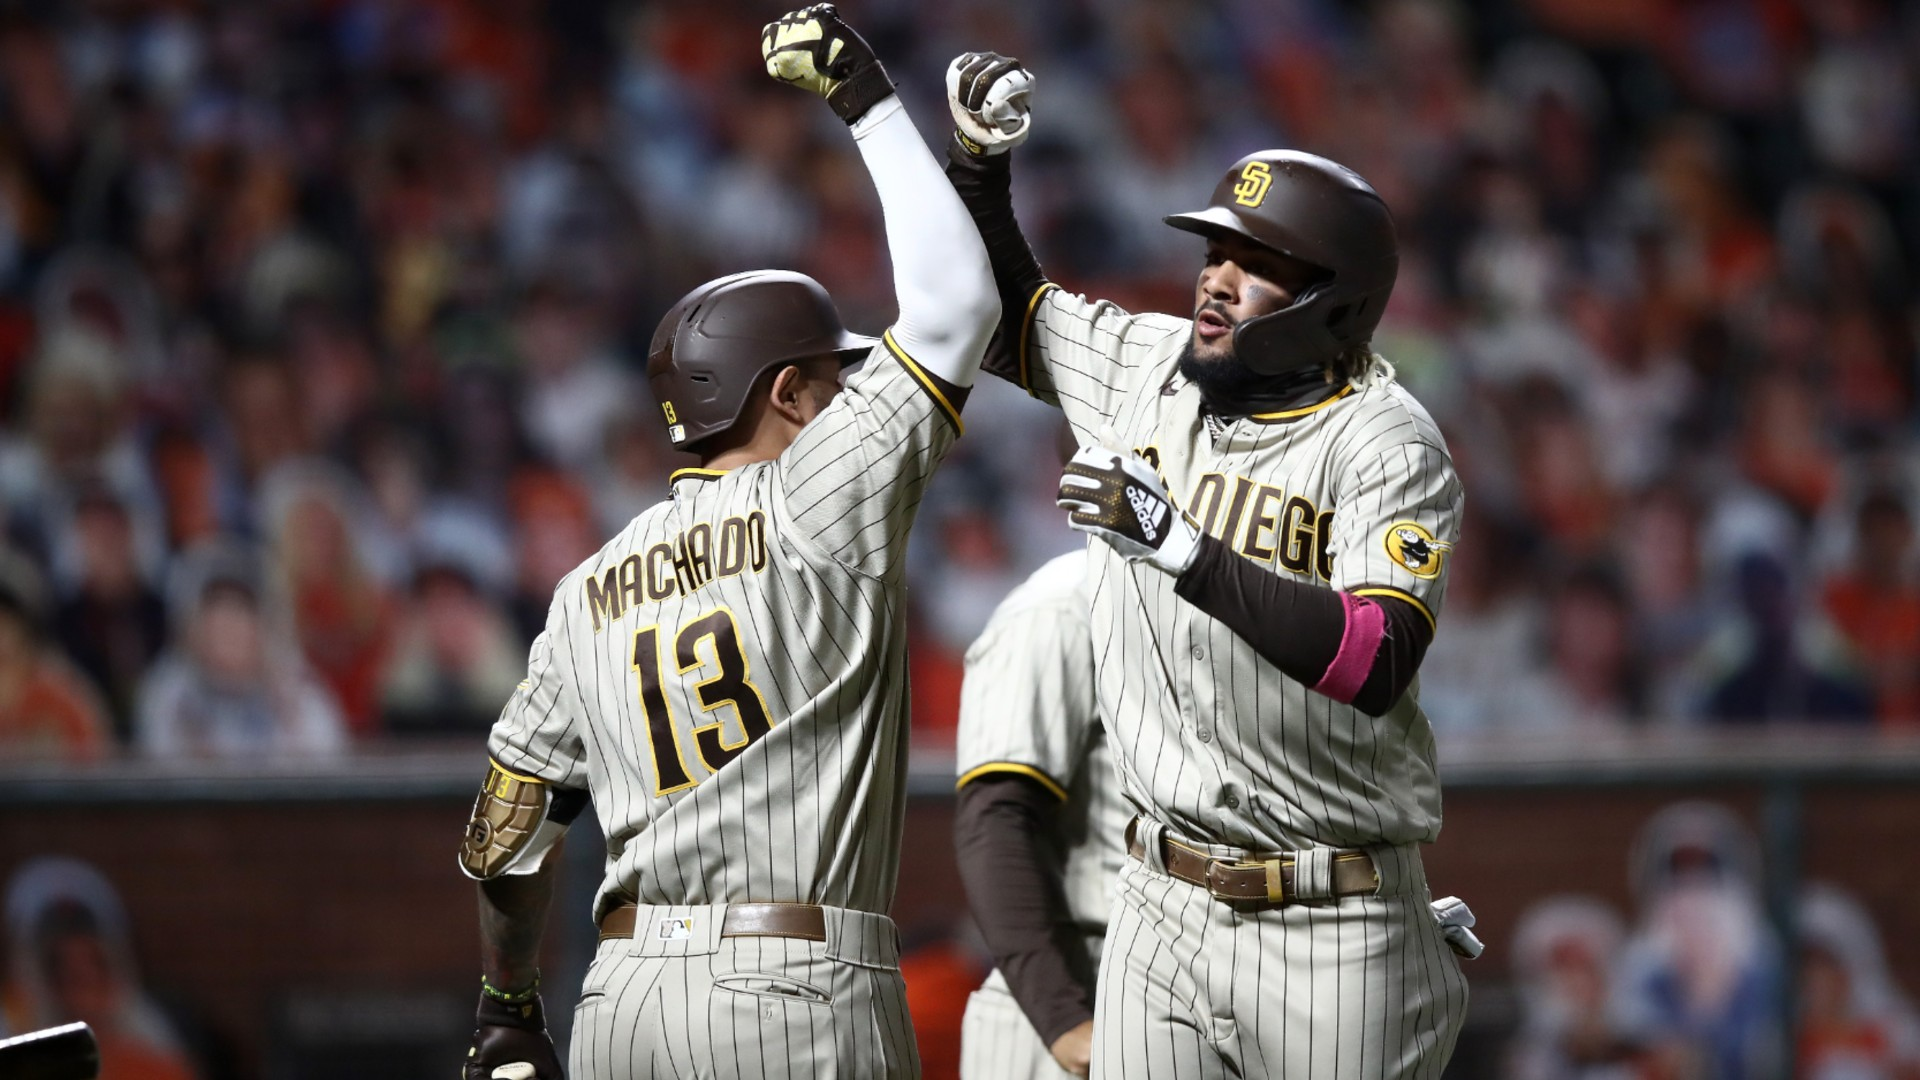 Eight games today? MLB should build on fantastic playoff schedule